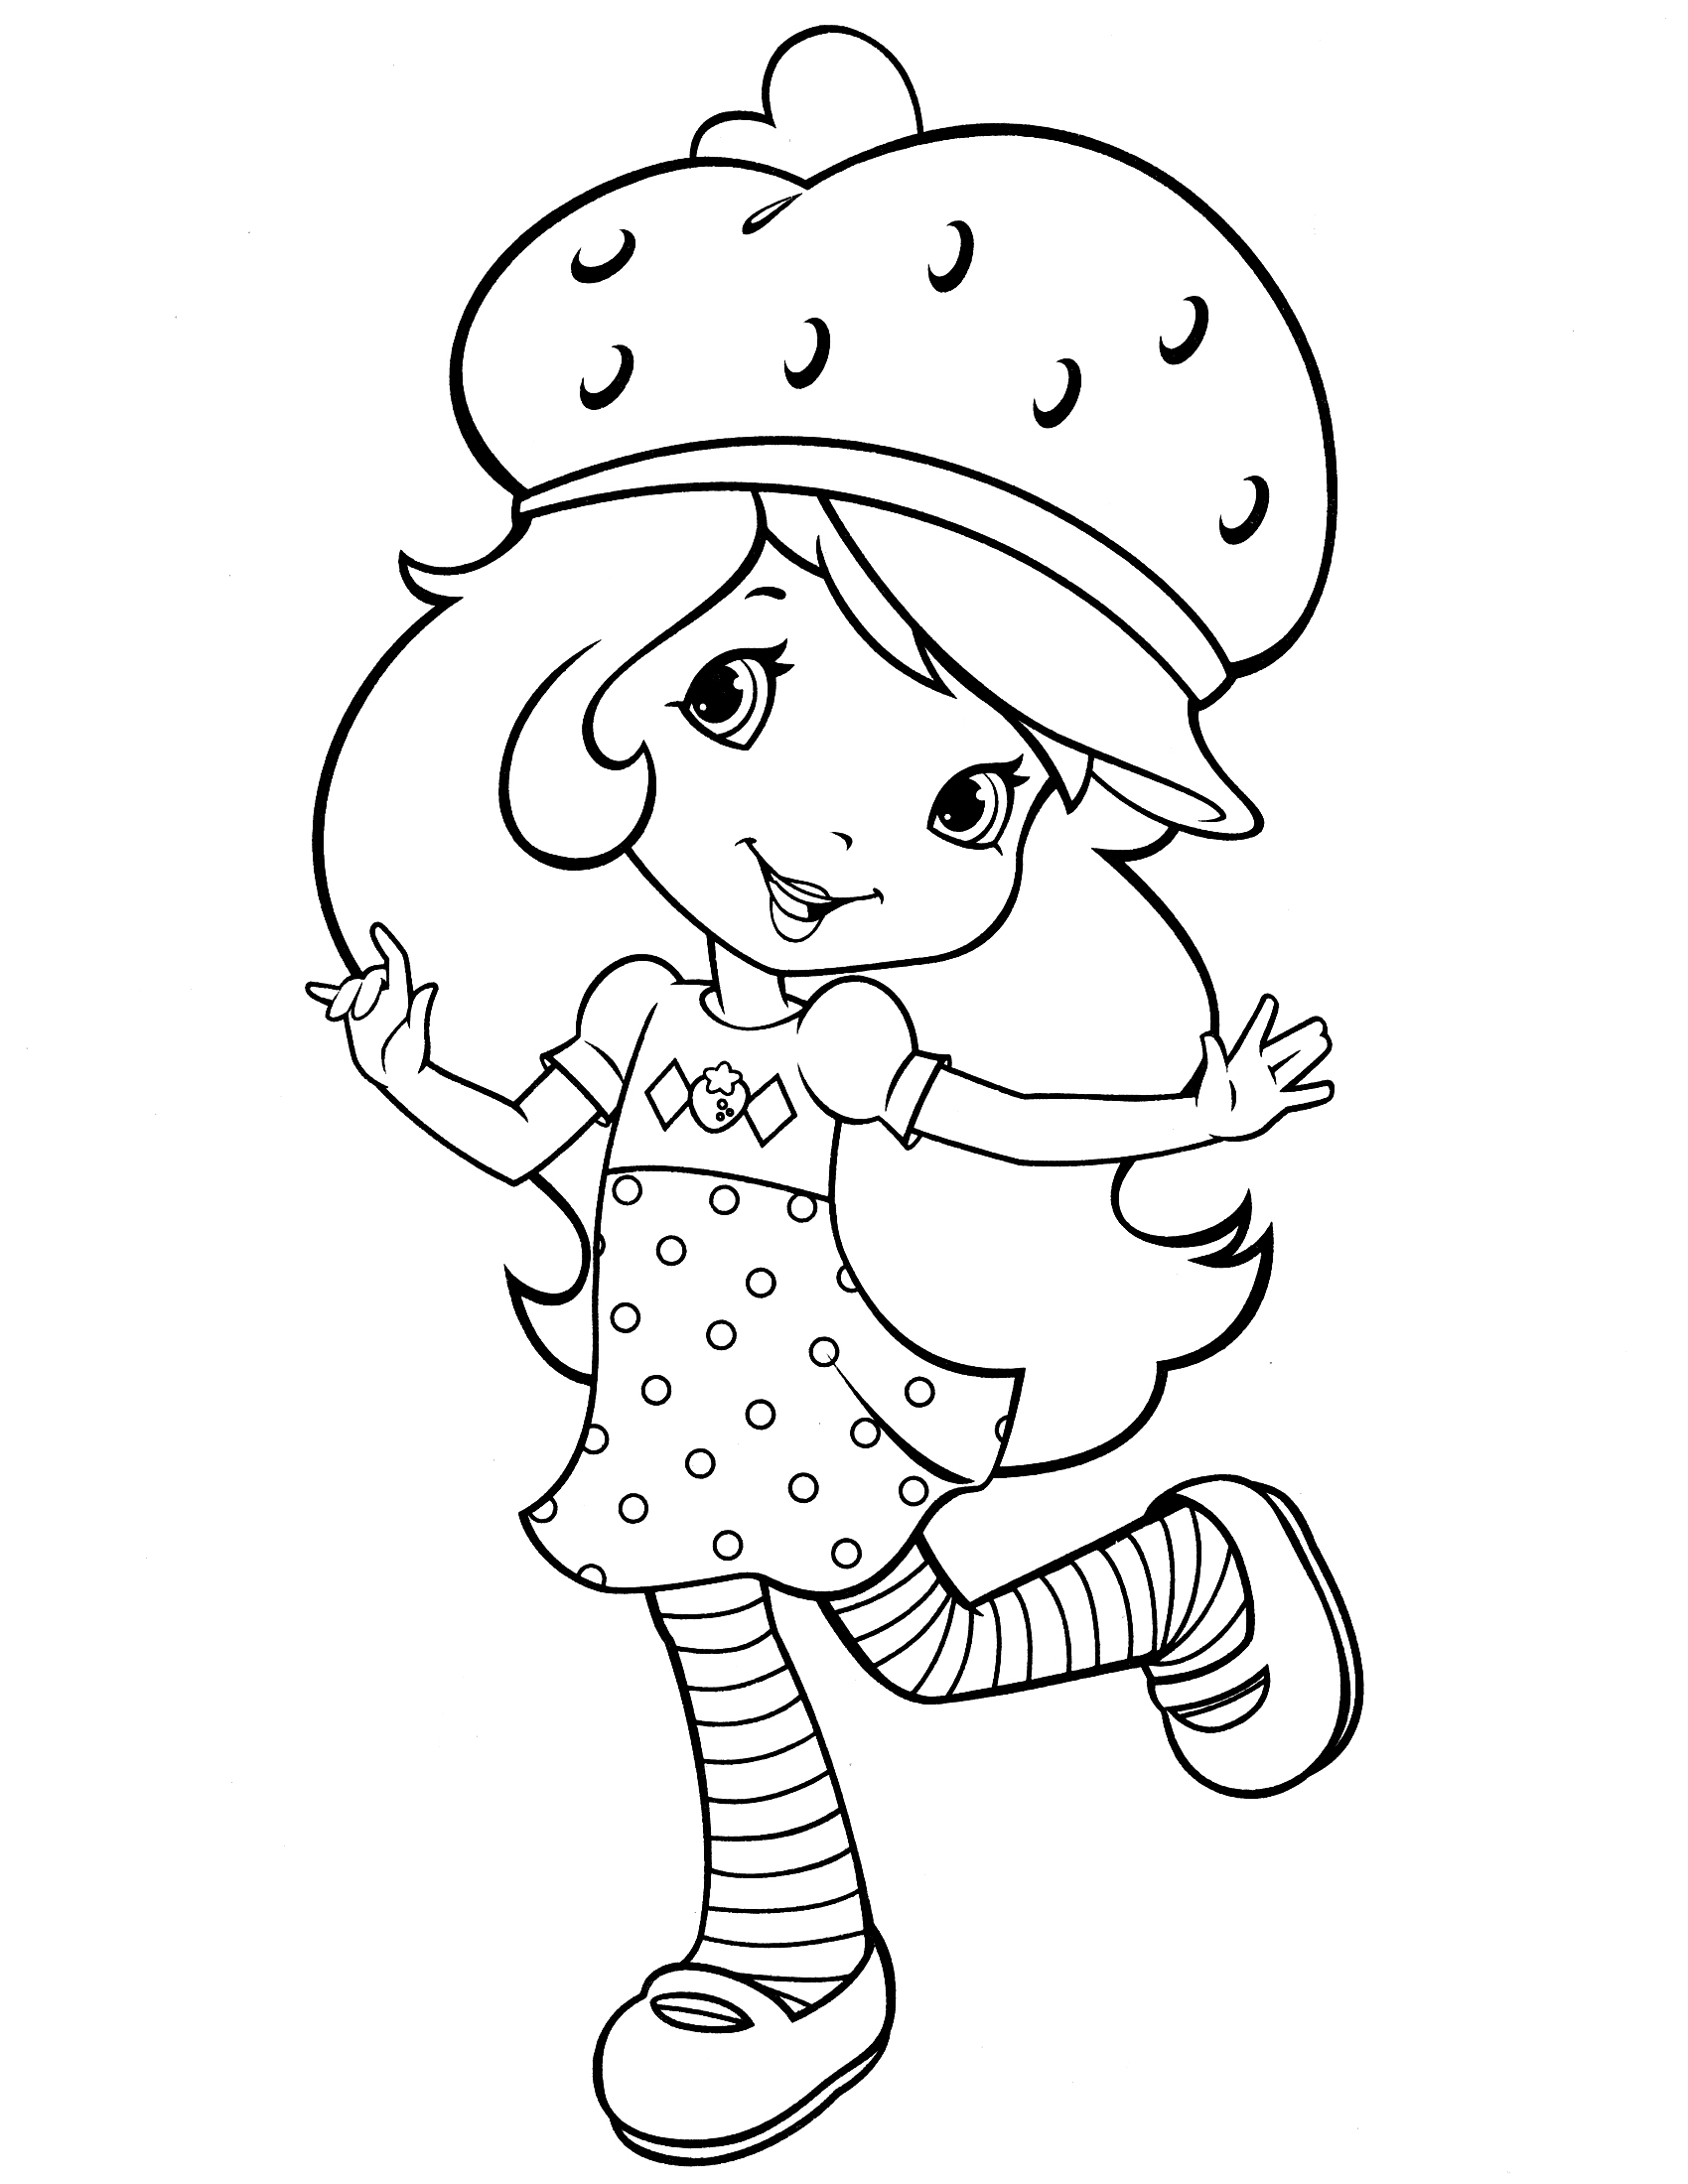 strawberry shortcake colouring pages to print princess strawberry shortcake coloring pages strawberry to colouring shortcake print pages